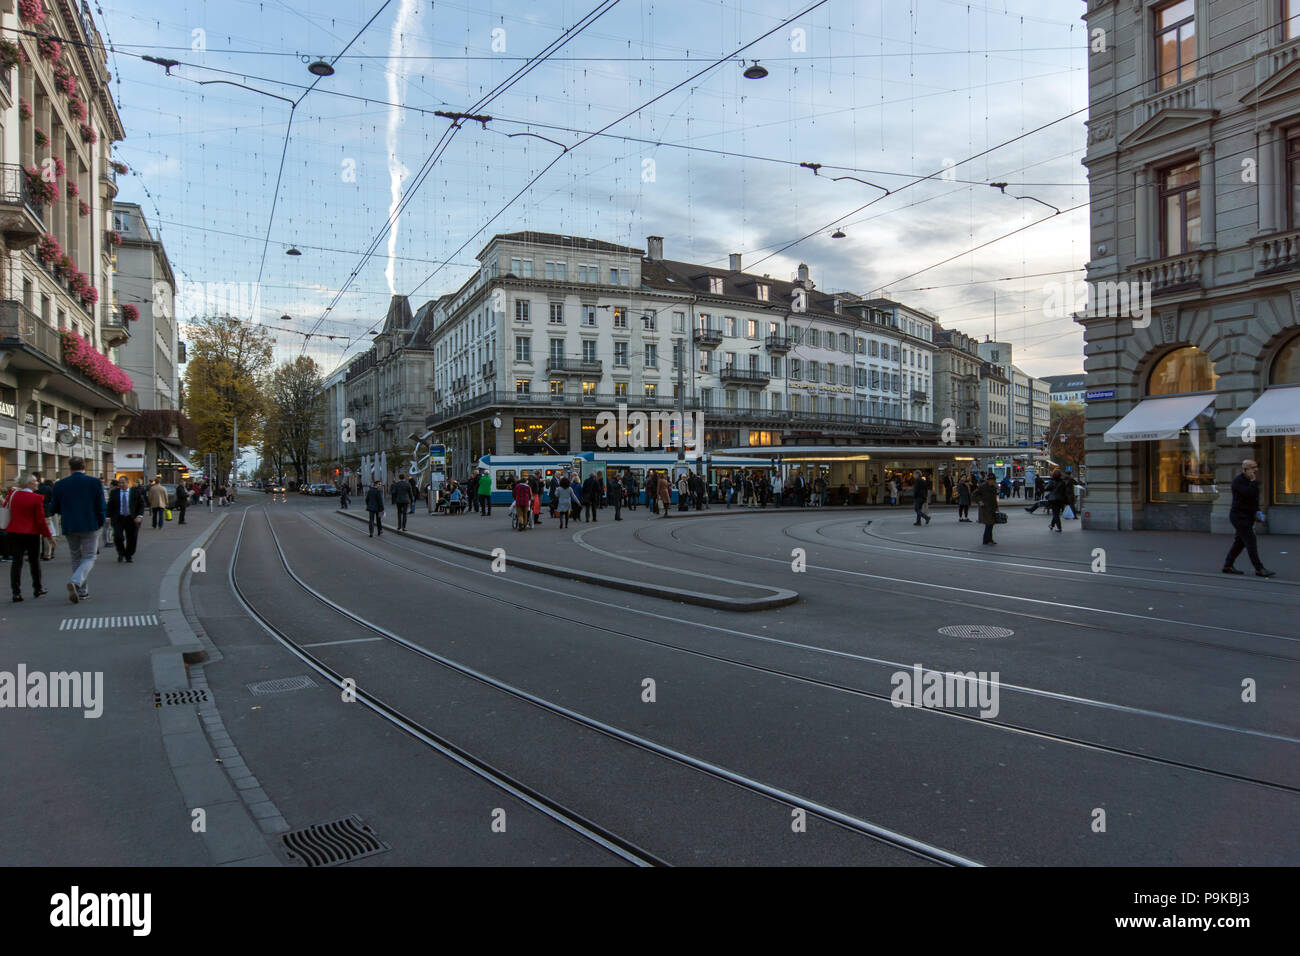 ZURICH, SWITZERLAND - OCTOBER 28, 2015: Bahnhofstrasse street in City of Zurich, Switzerland - Stock Image